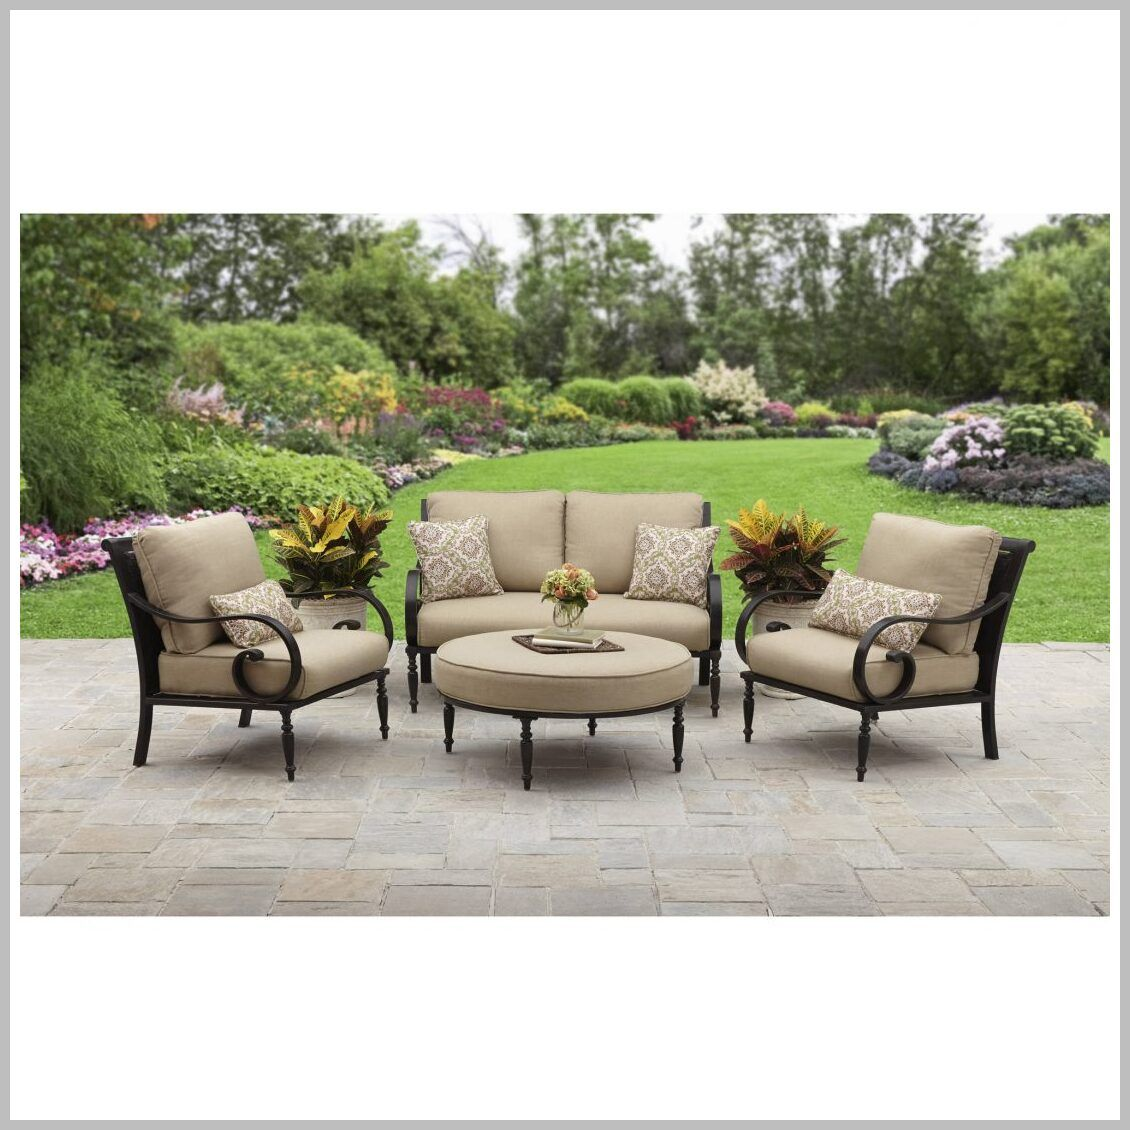 78 Reference Of Patio Furniture Sets Clearance In 2020 Luxury Patio Furniture Conversation Set Patio Cheap Patio Furniture